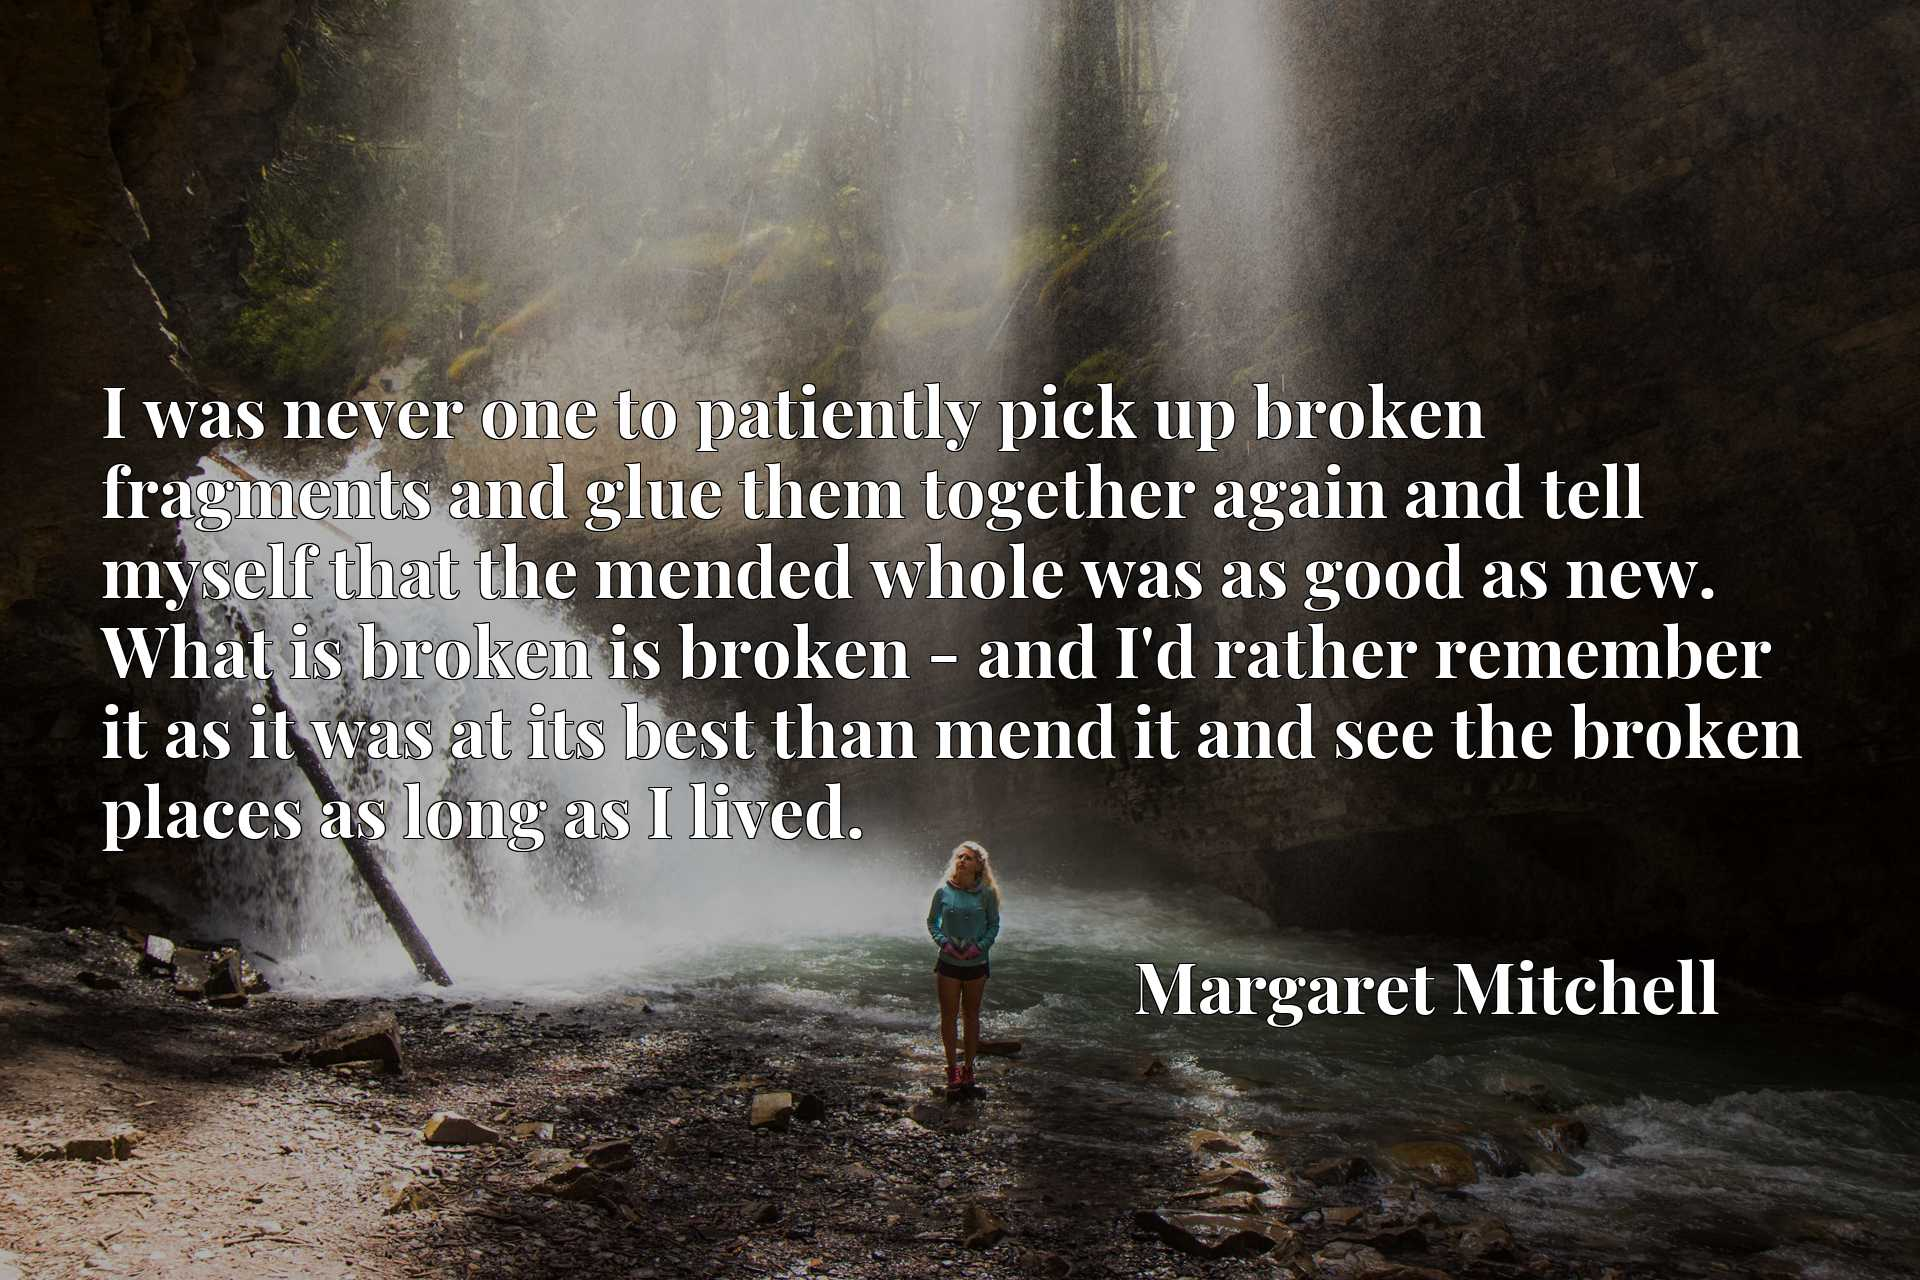 I was never one to patiently pick up broken fragments and glue them together again and tell myself that the mended whole was as good as new. What is broken is broken - and I'd rather remember it as it was at its best than mend it and see the broken places as long as I lived.